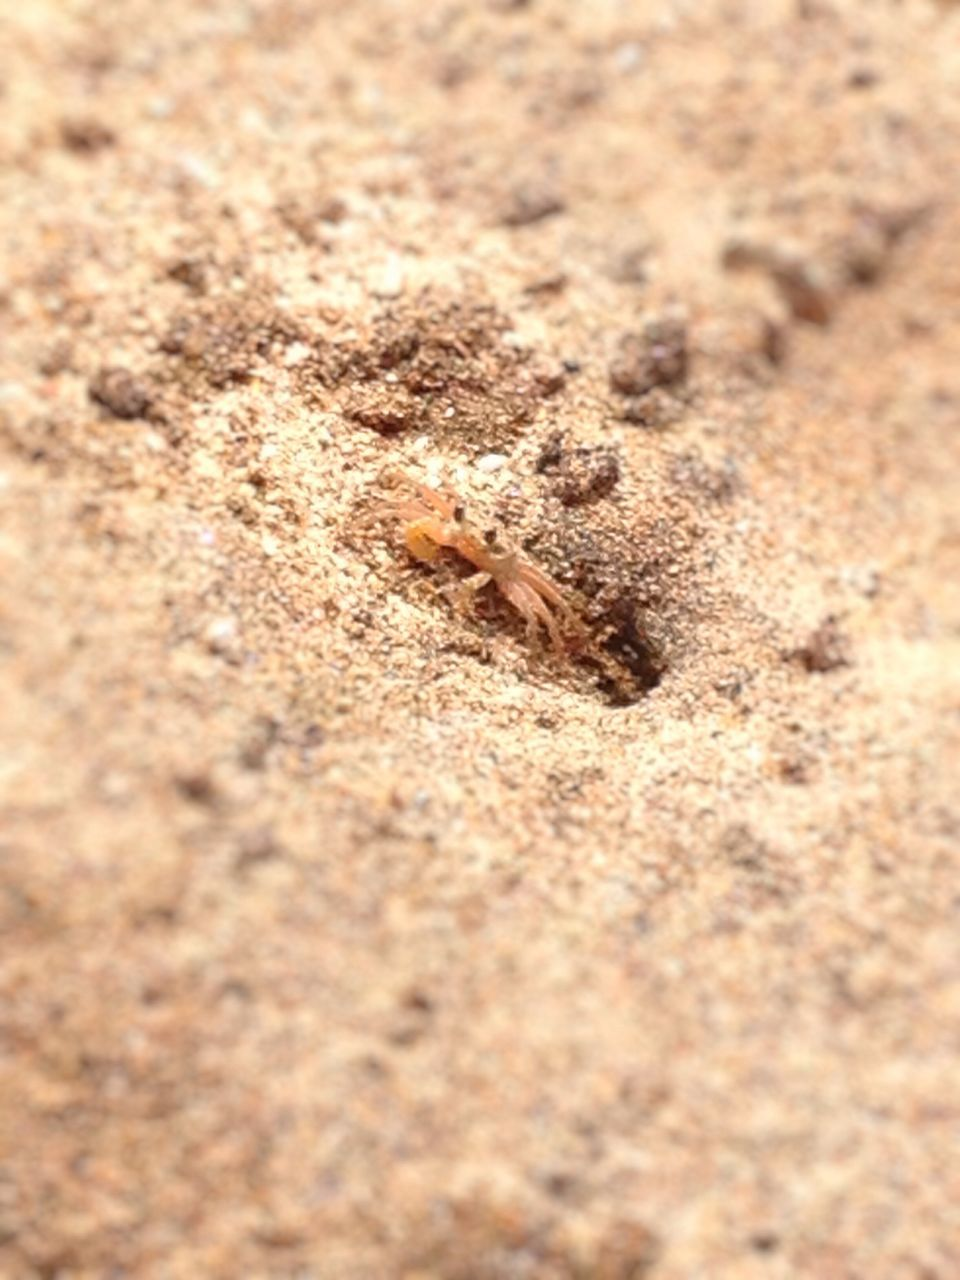 sand, beach, animal themes, one animal, animals in the wild, no people, animal wildlife, nature, brown, close-up, day, outdoors, sea life, camouflage, sand dune